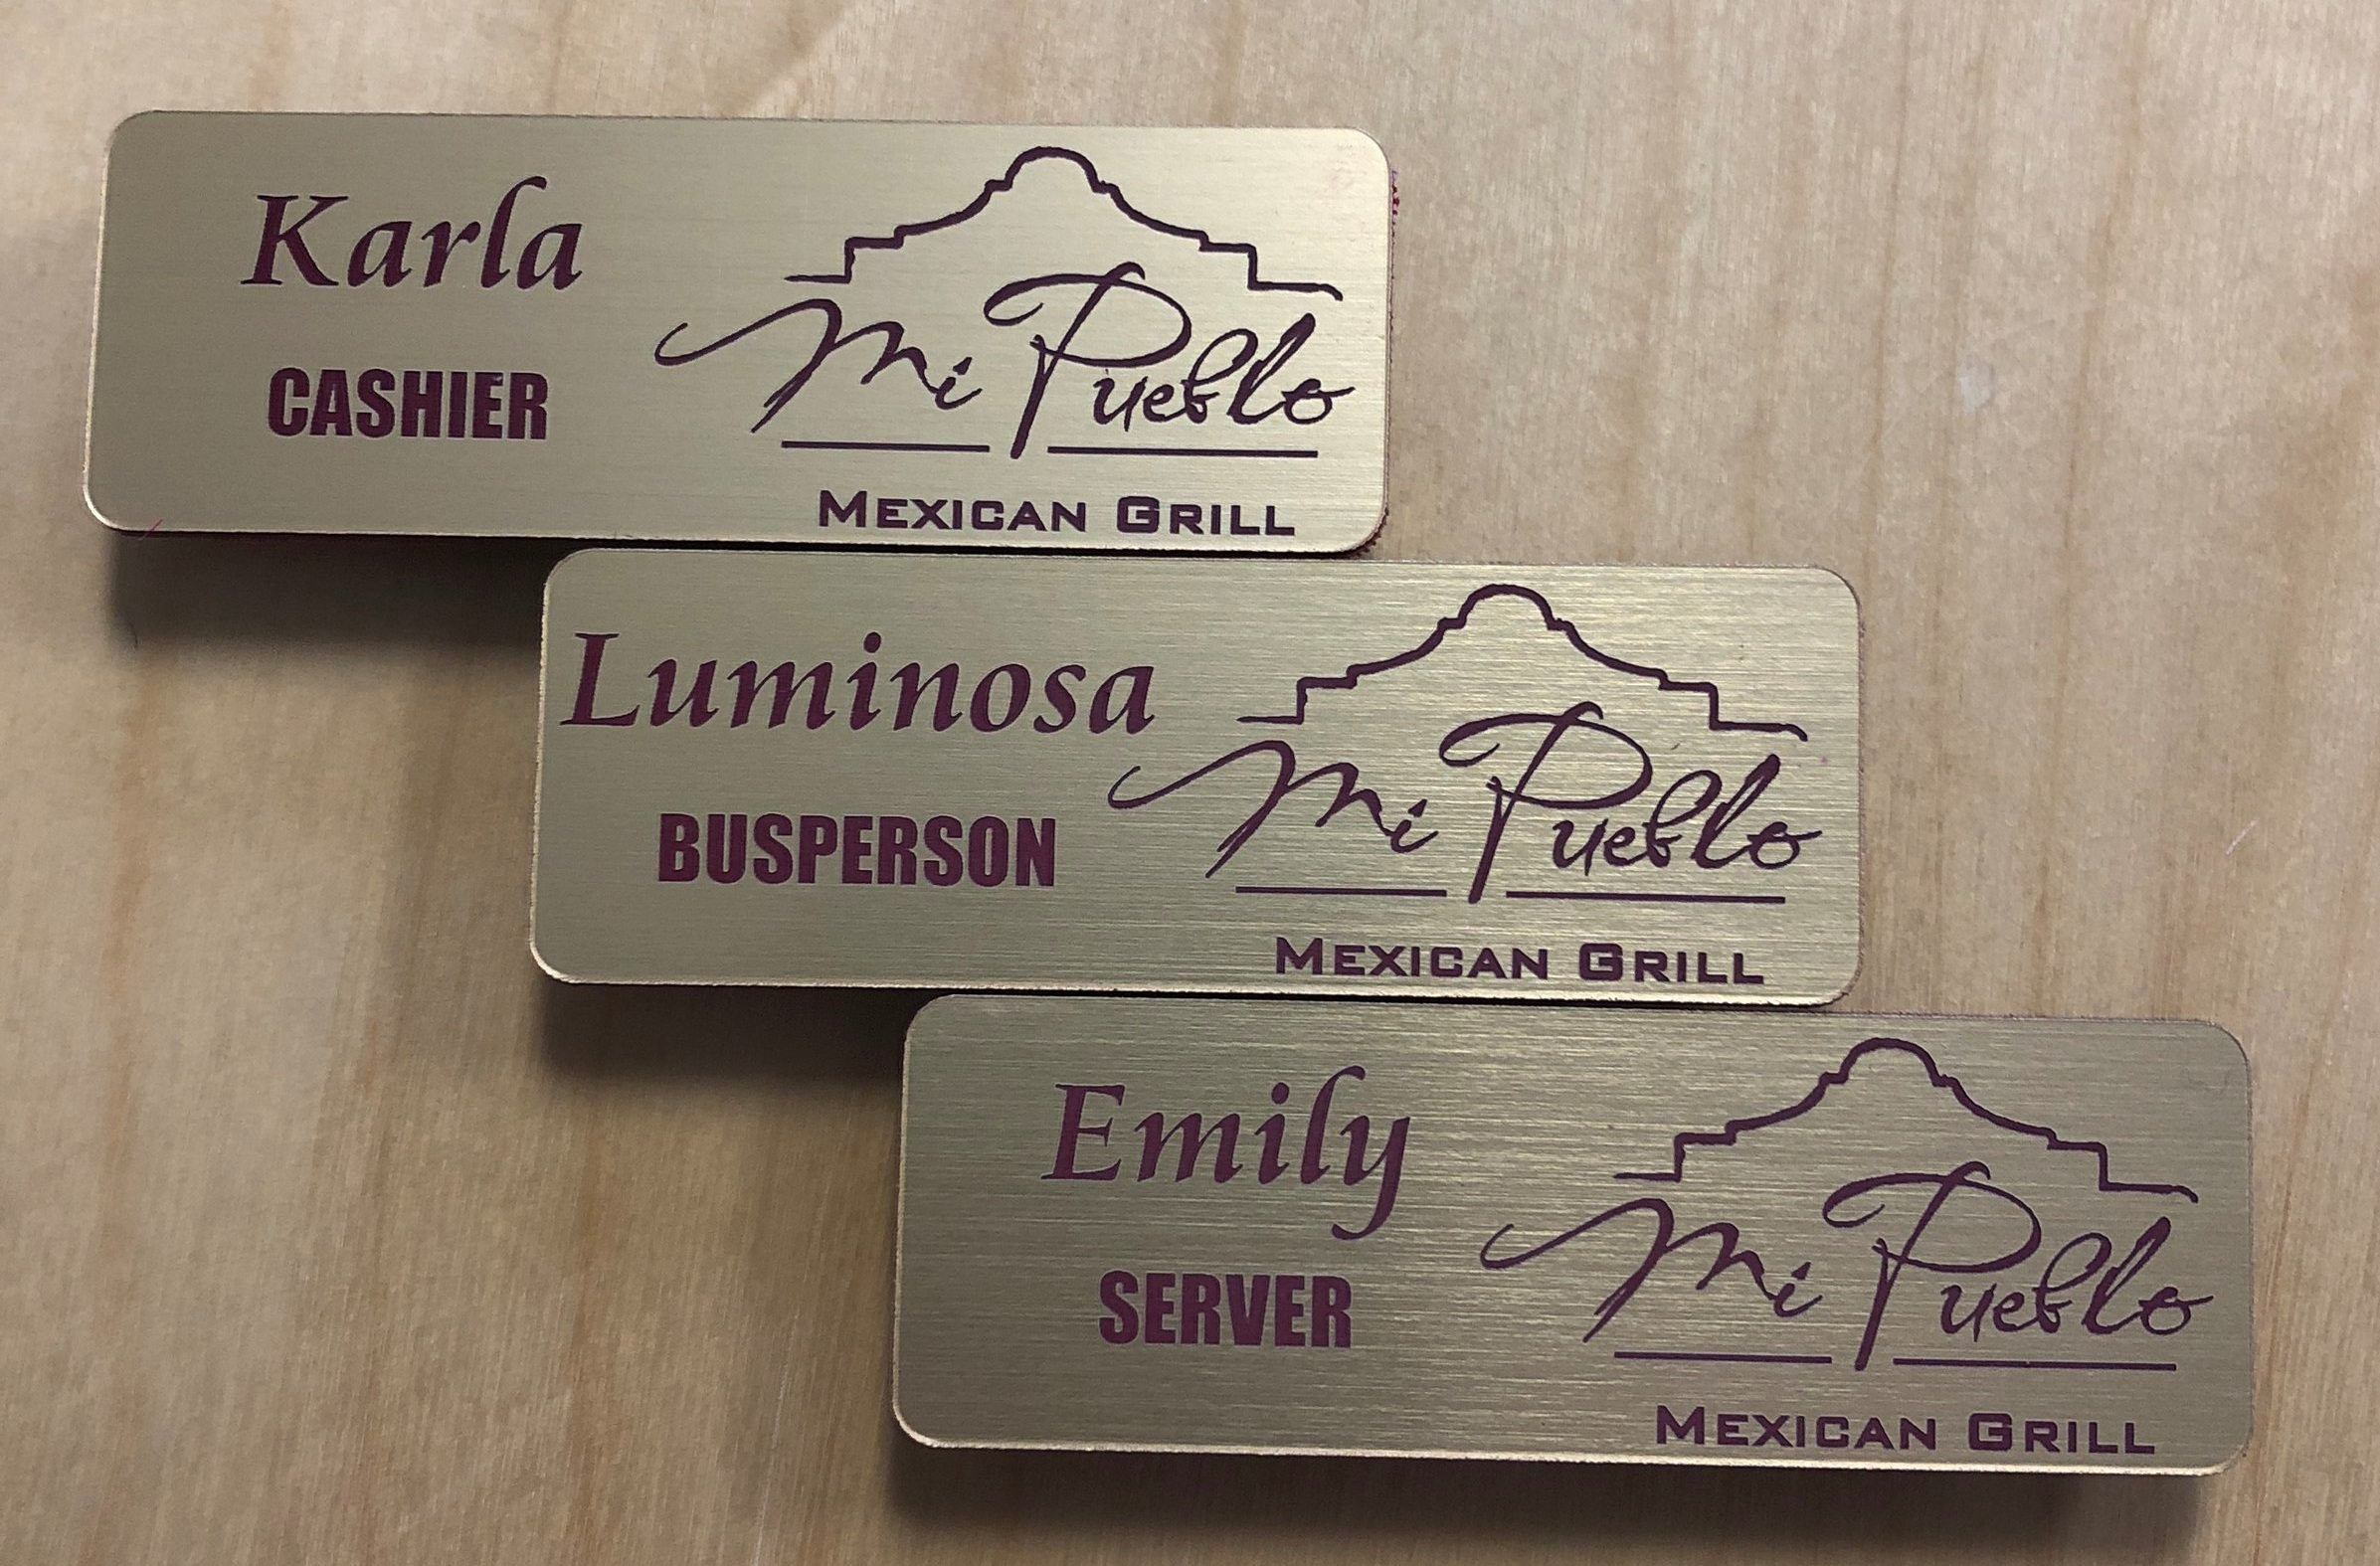 CLICK ON THE IMAGE TO LEARN MORE ABOUT CUSTOM NAME TAGS, BADGES, SIGNS AND IDENTIFICATION PRODUCTS